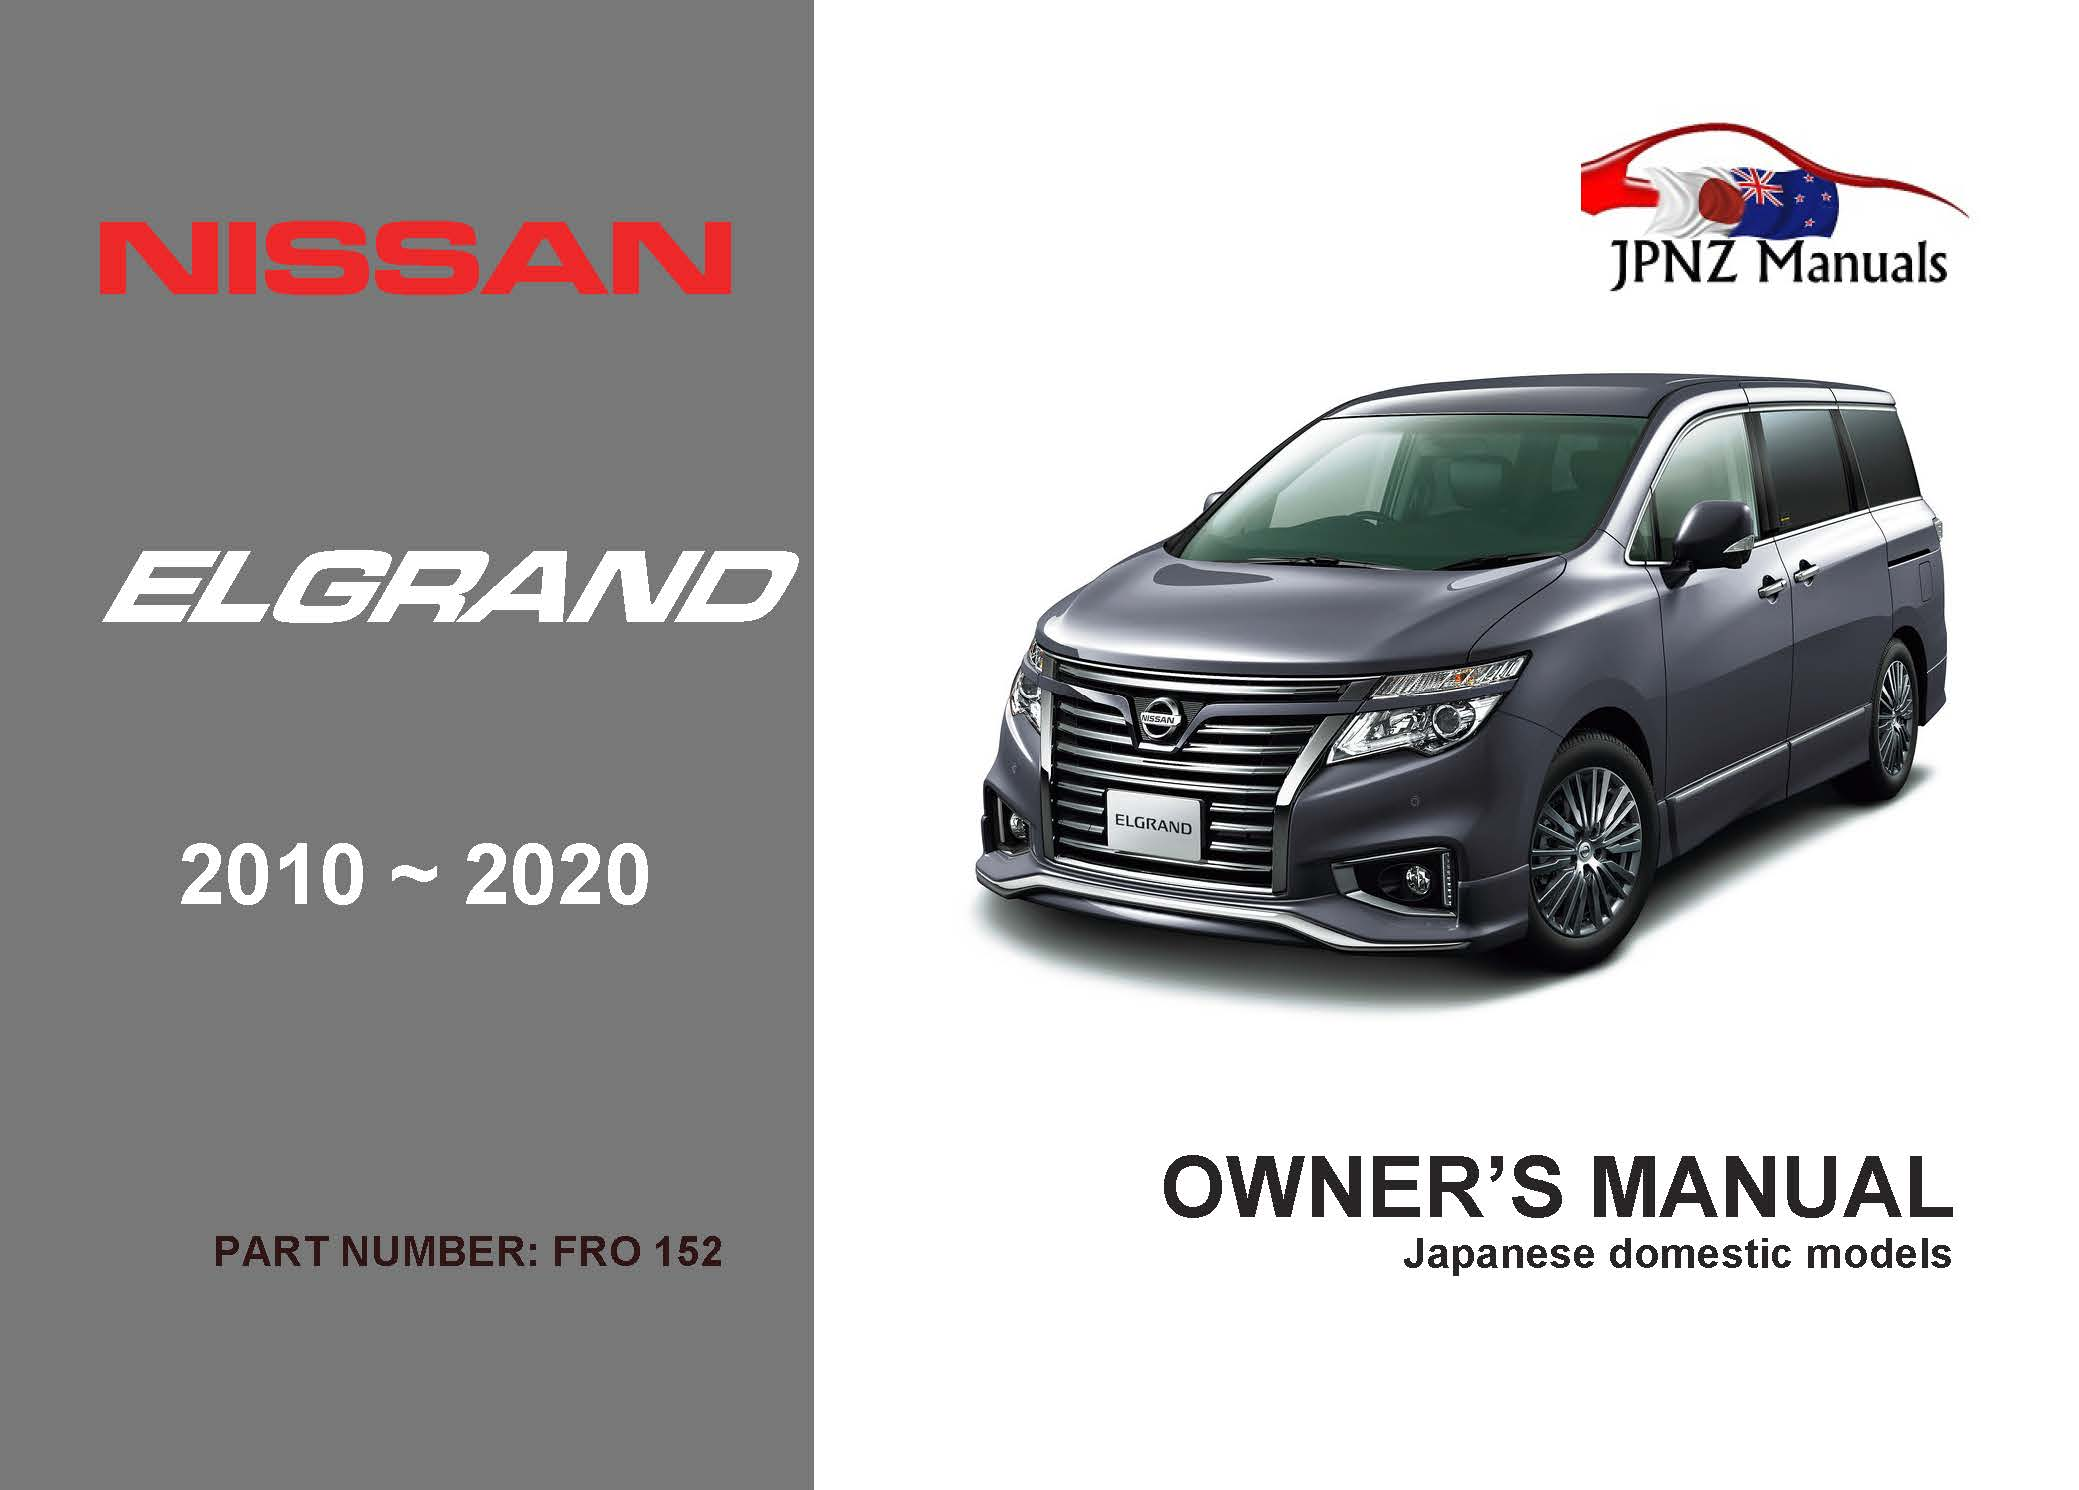 Nissan E52 Elgrand owners manual 2010~2020